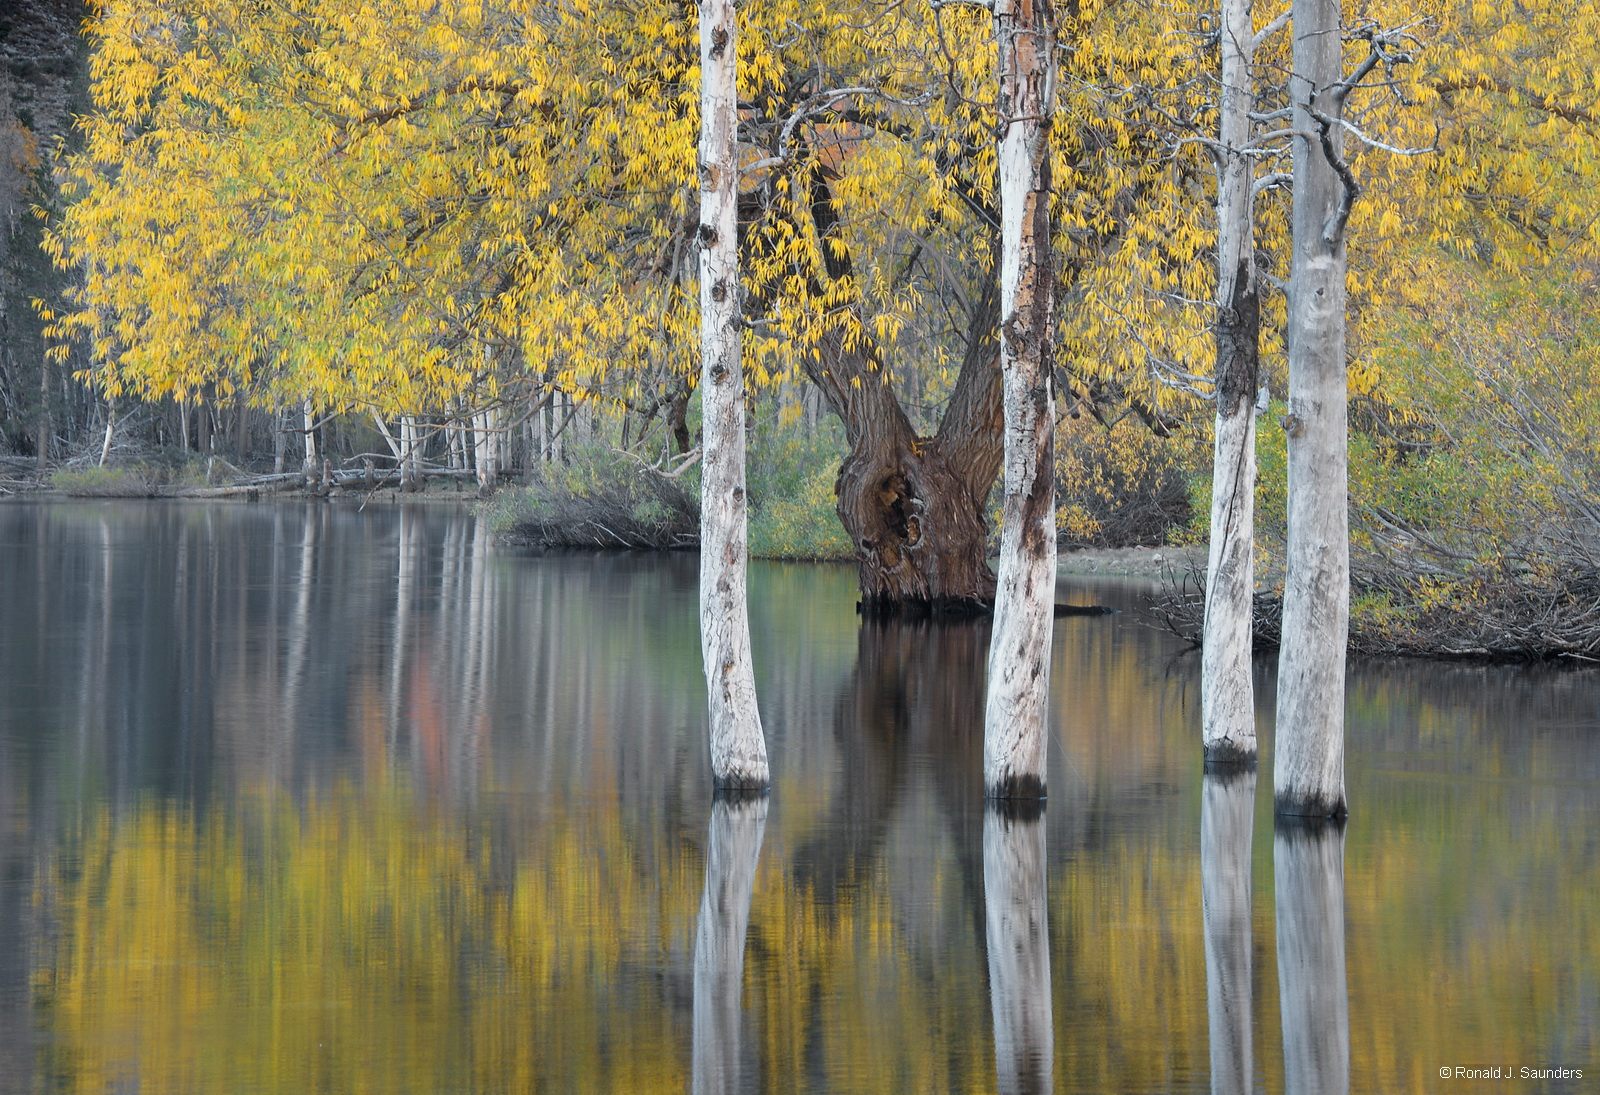 ronald, saunders, bodie, digital, fine art, ronald j, lundy, lake, lee ving,falls, water, creek, saunders,willow, photo, photo